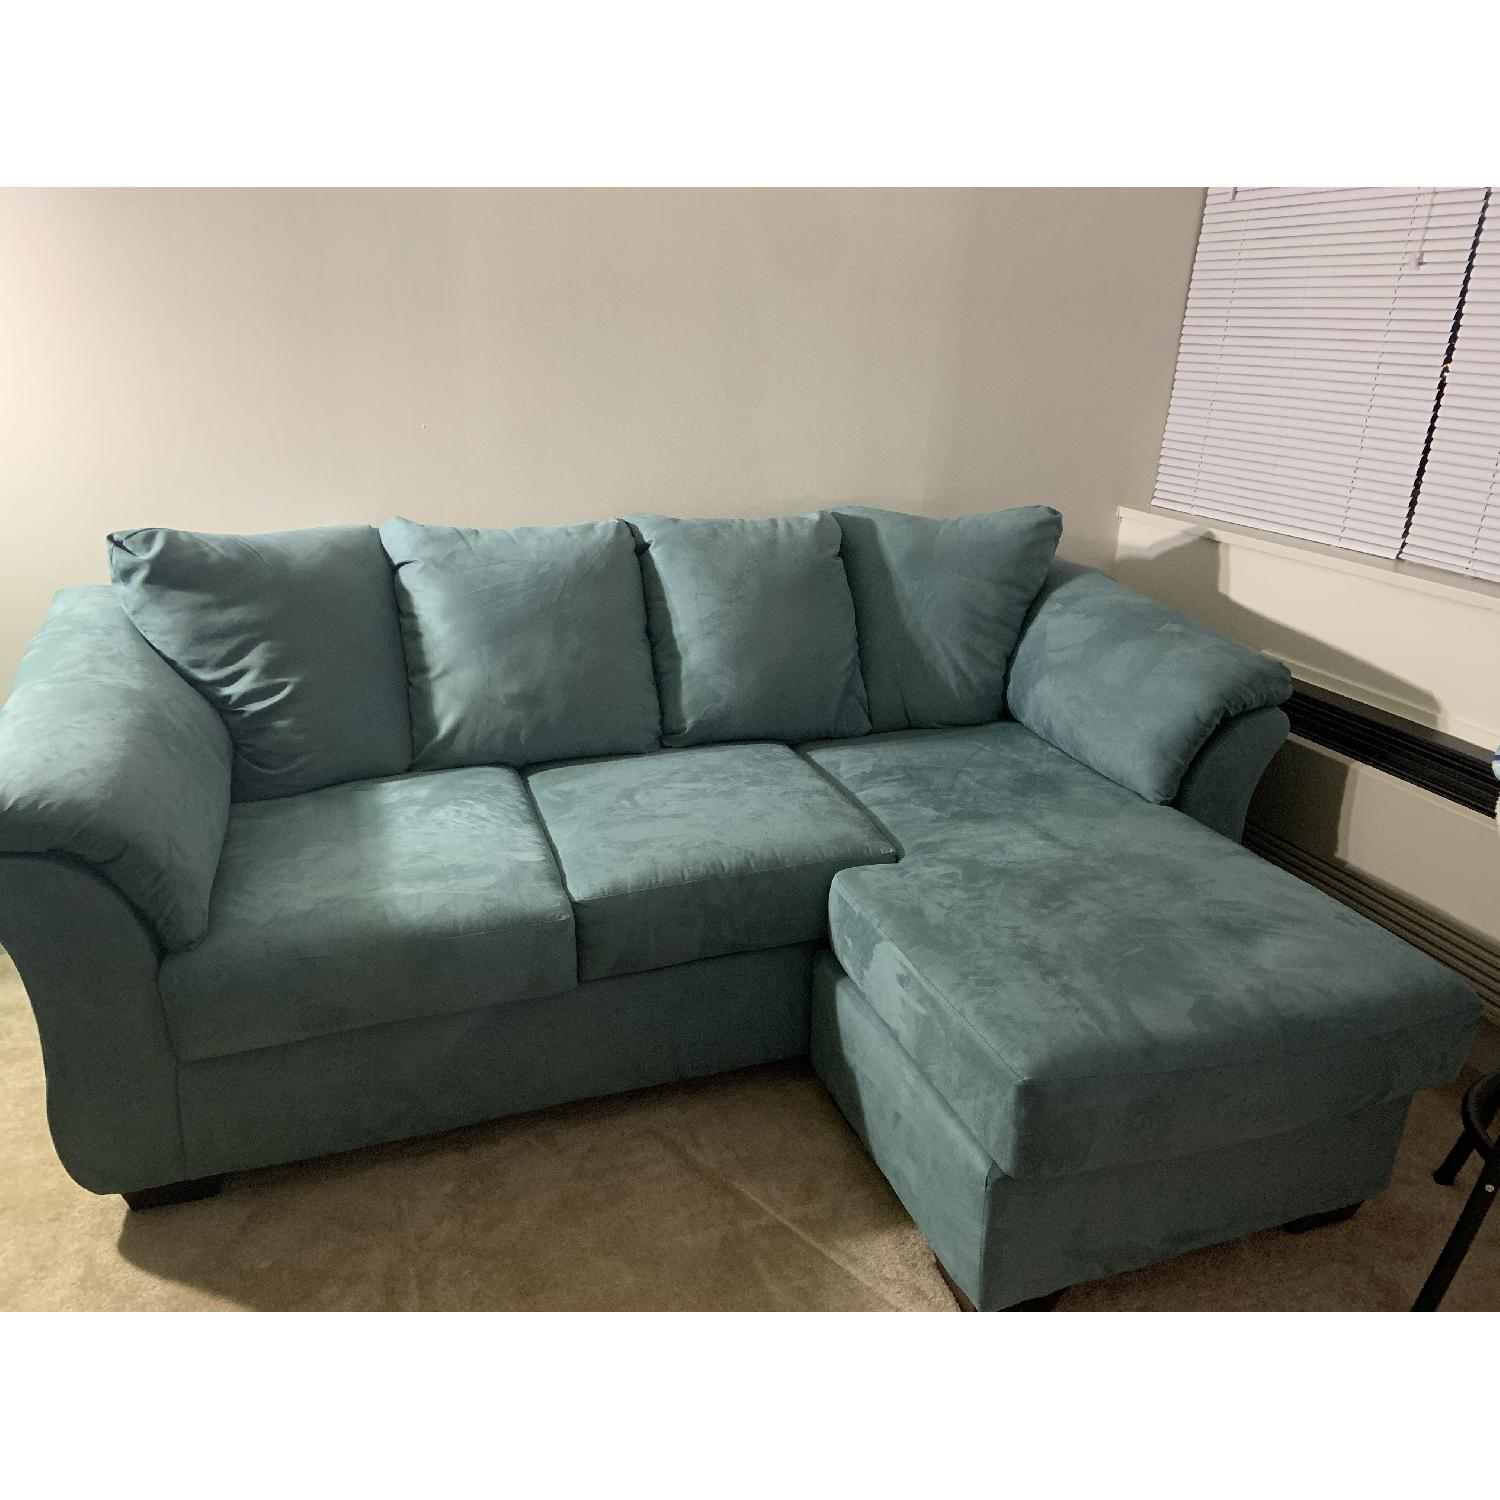 Superb Ashley Darcy Chaise Sectional Sofa In Sky Blue Aptdeco Caraccident5 Cool Chair Designs And Ideas Caraccident5Info